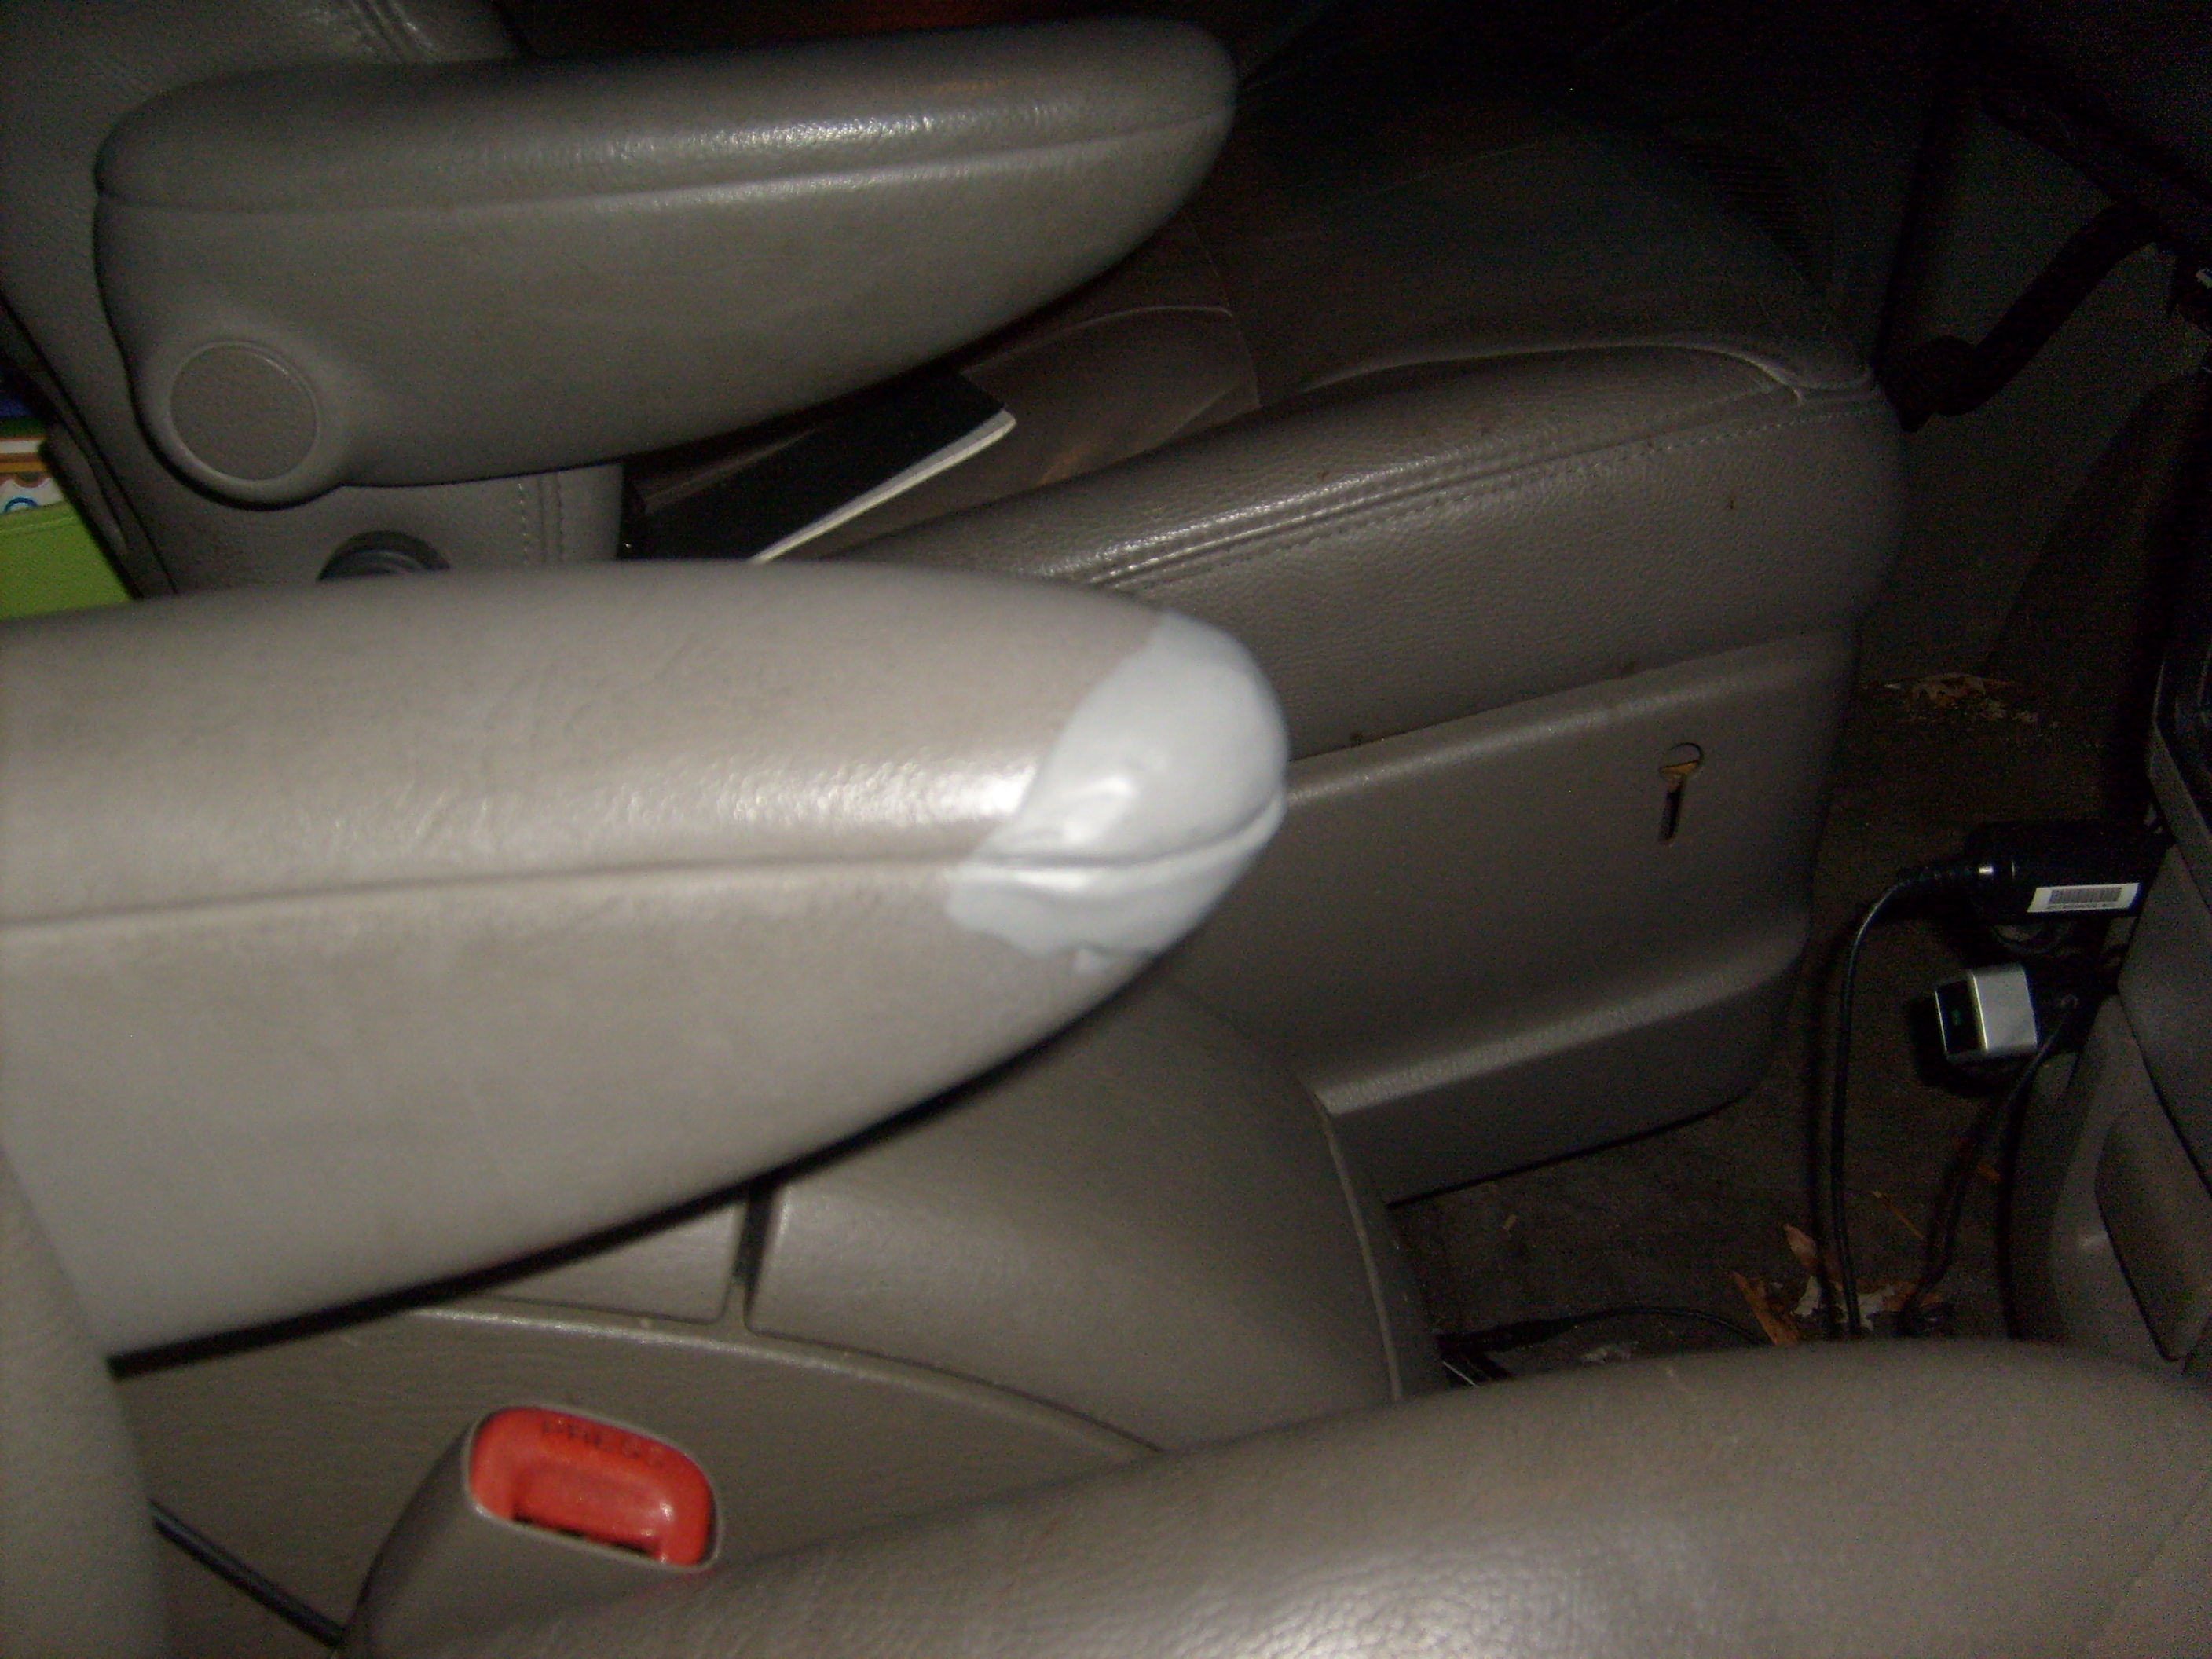 Car Interior + Sugru = Awesome?